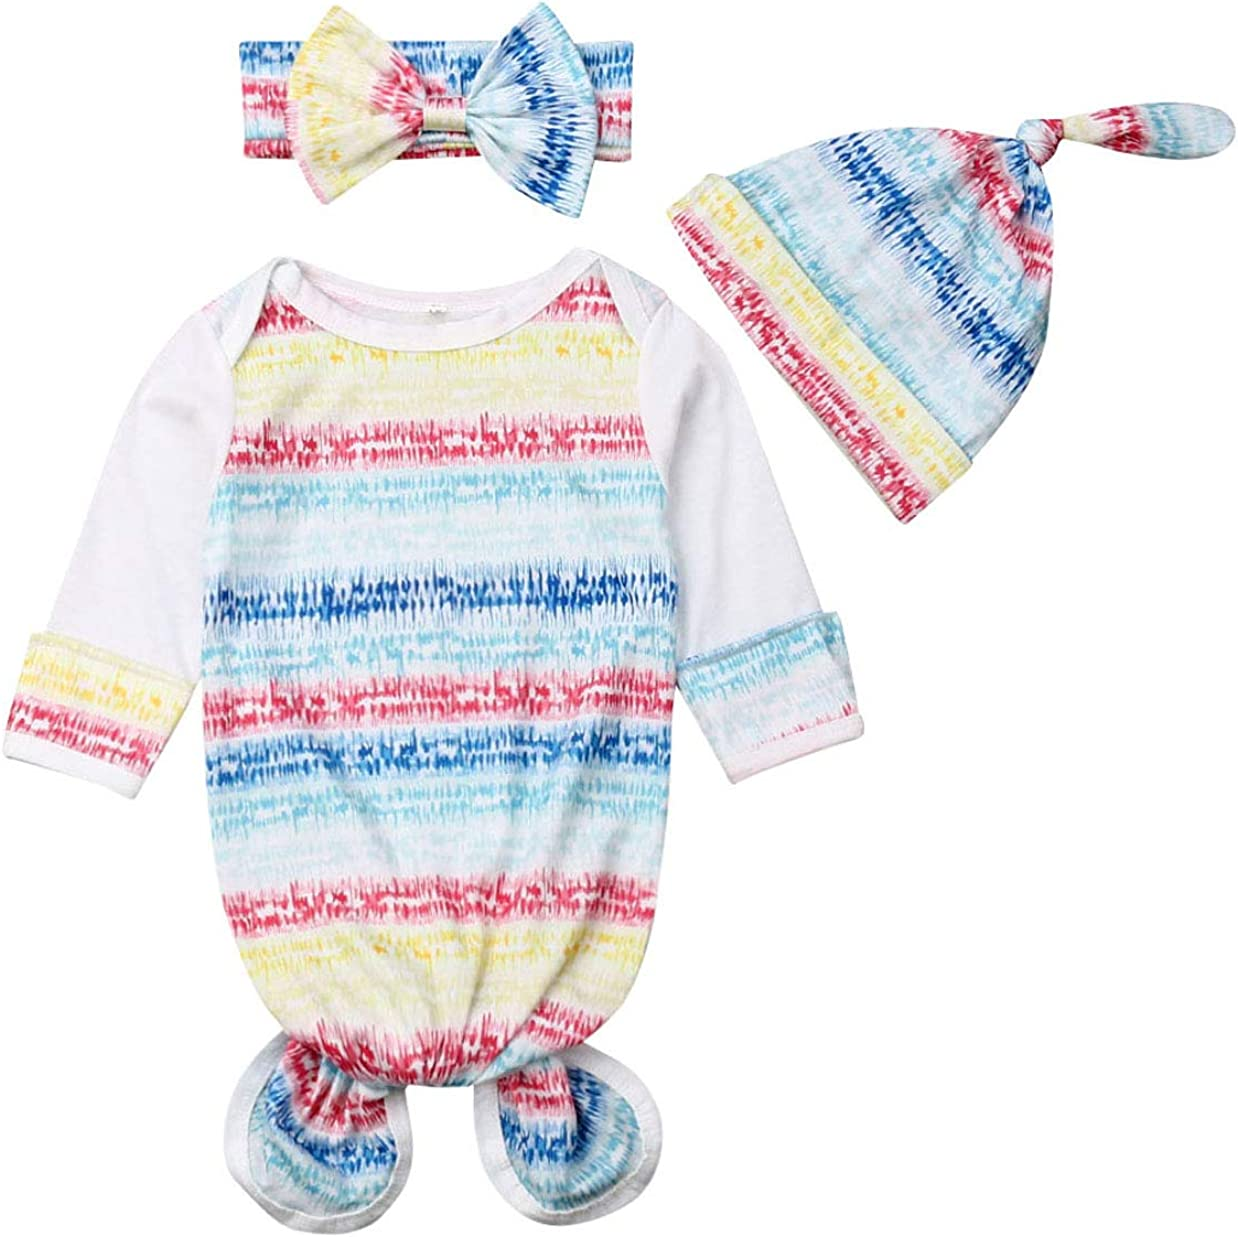 Newborn Baby Boy Girl Sleeper Gowns,Unisex Striped Sleeping Bags Swaddle Sack Coming Home Outfit